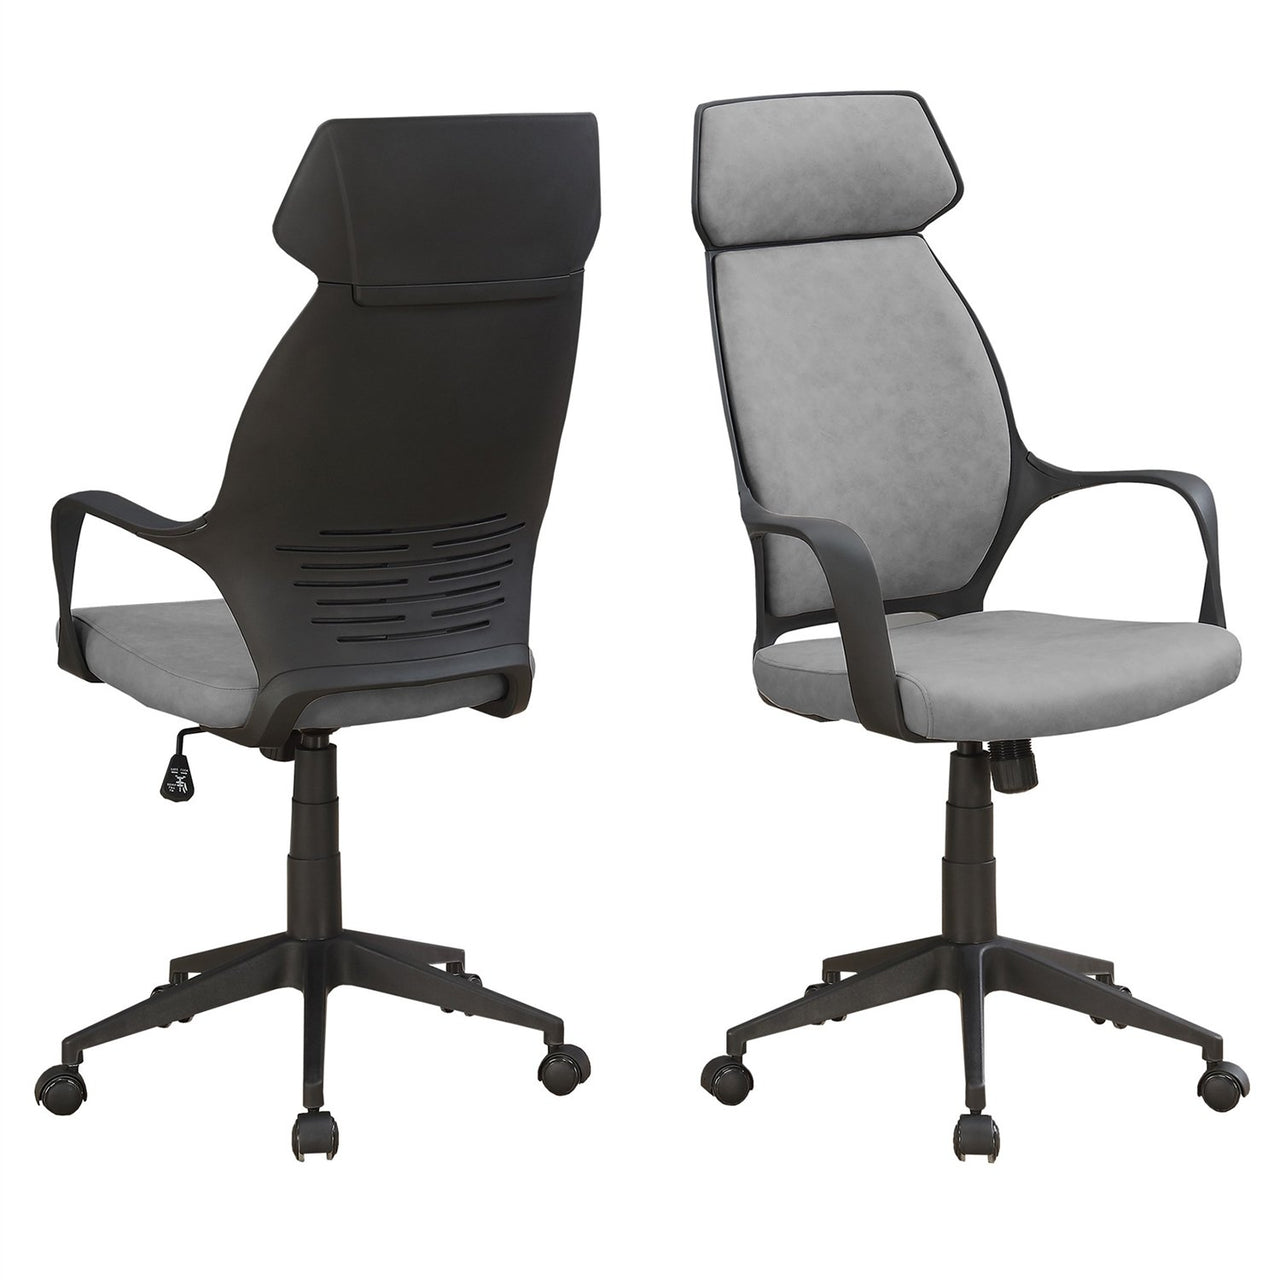 Grey Black Ergonomic Adjustable Microfiber High Back Executive Office Chair